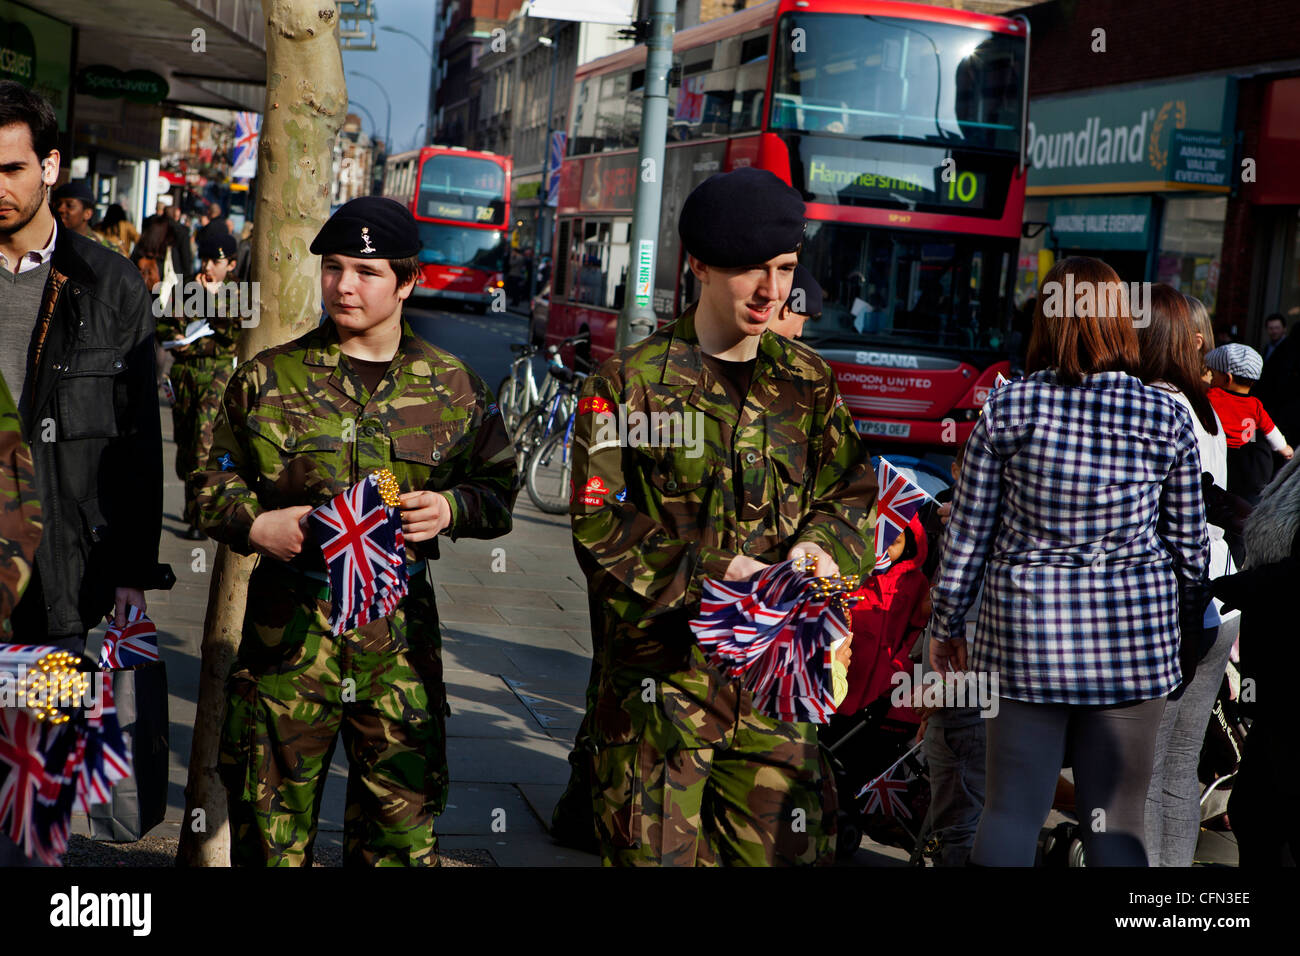 Part time army cadets giving out Union Jack flags to shoppers before a military parade - Stock Image